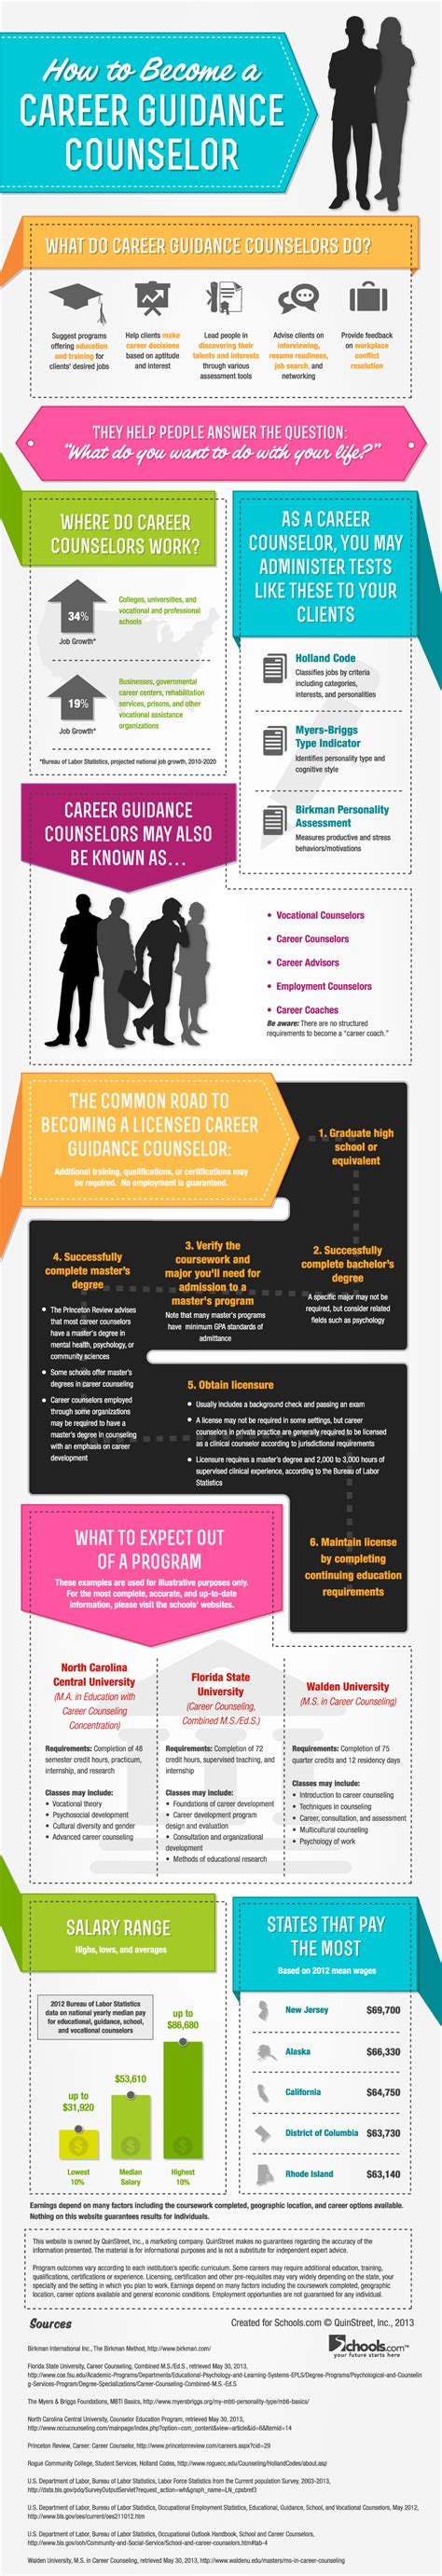 how to become a school counselor how to become a career guidance counselor schools